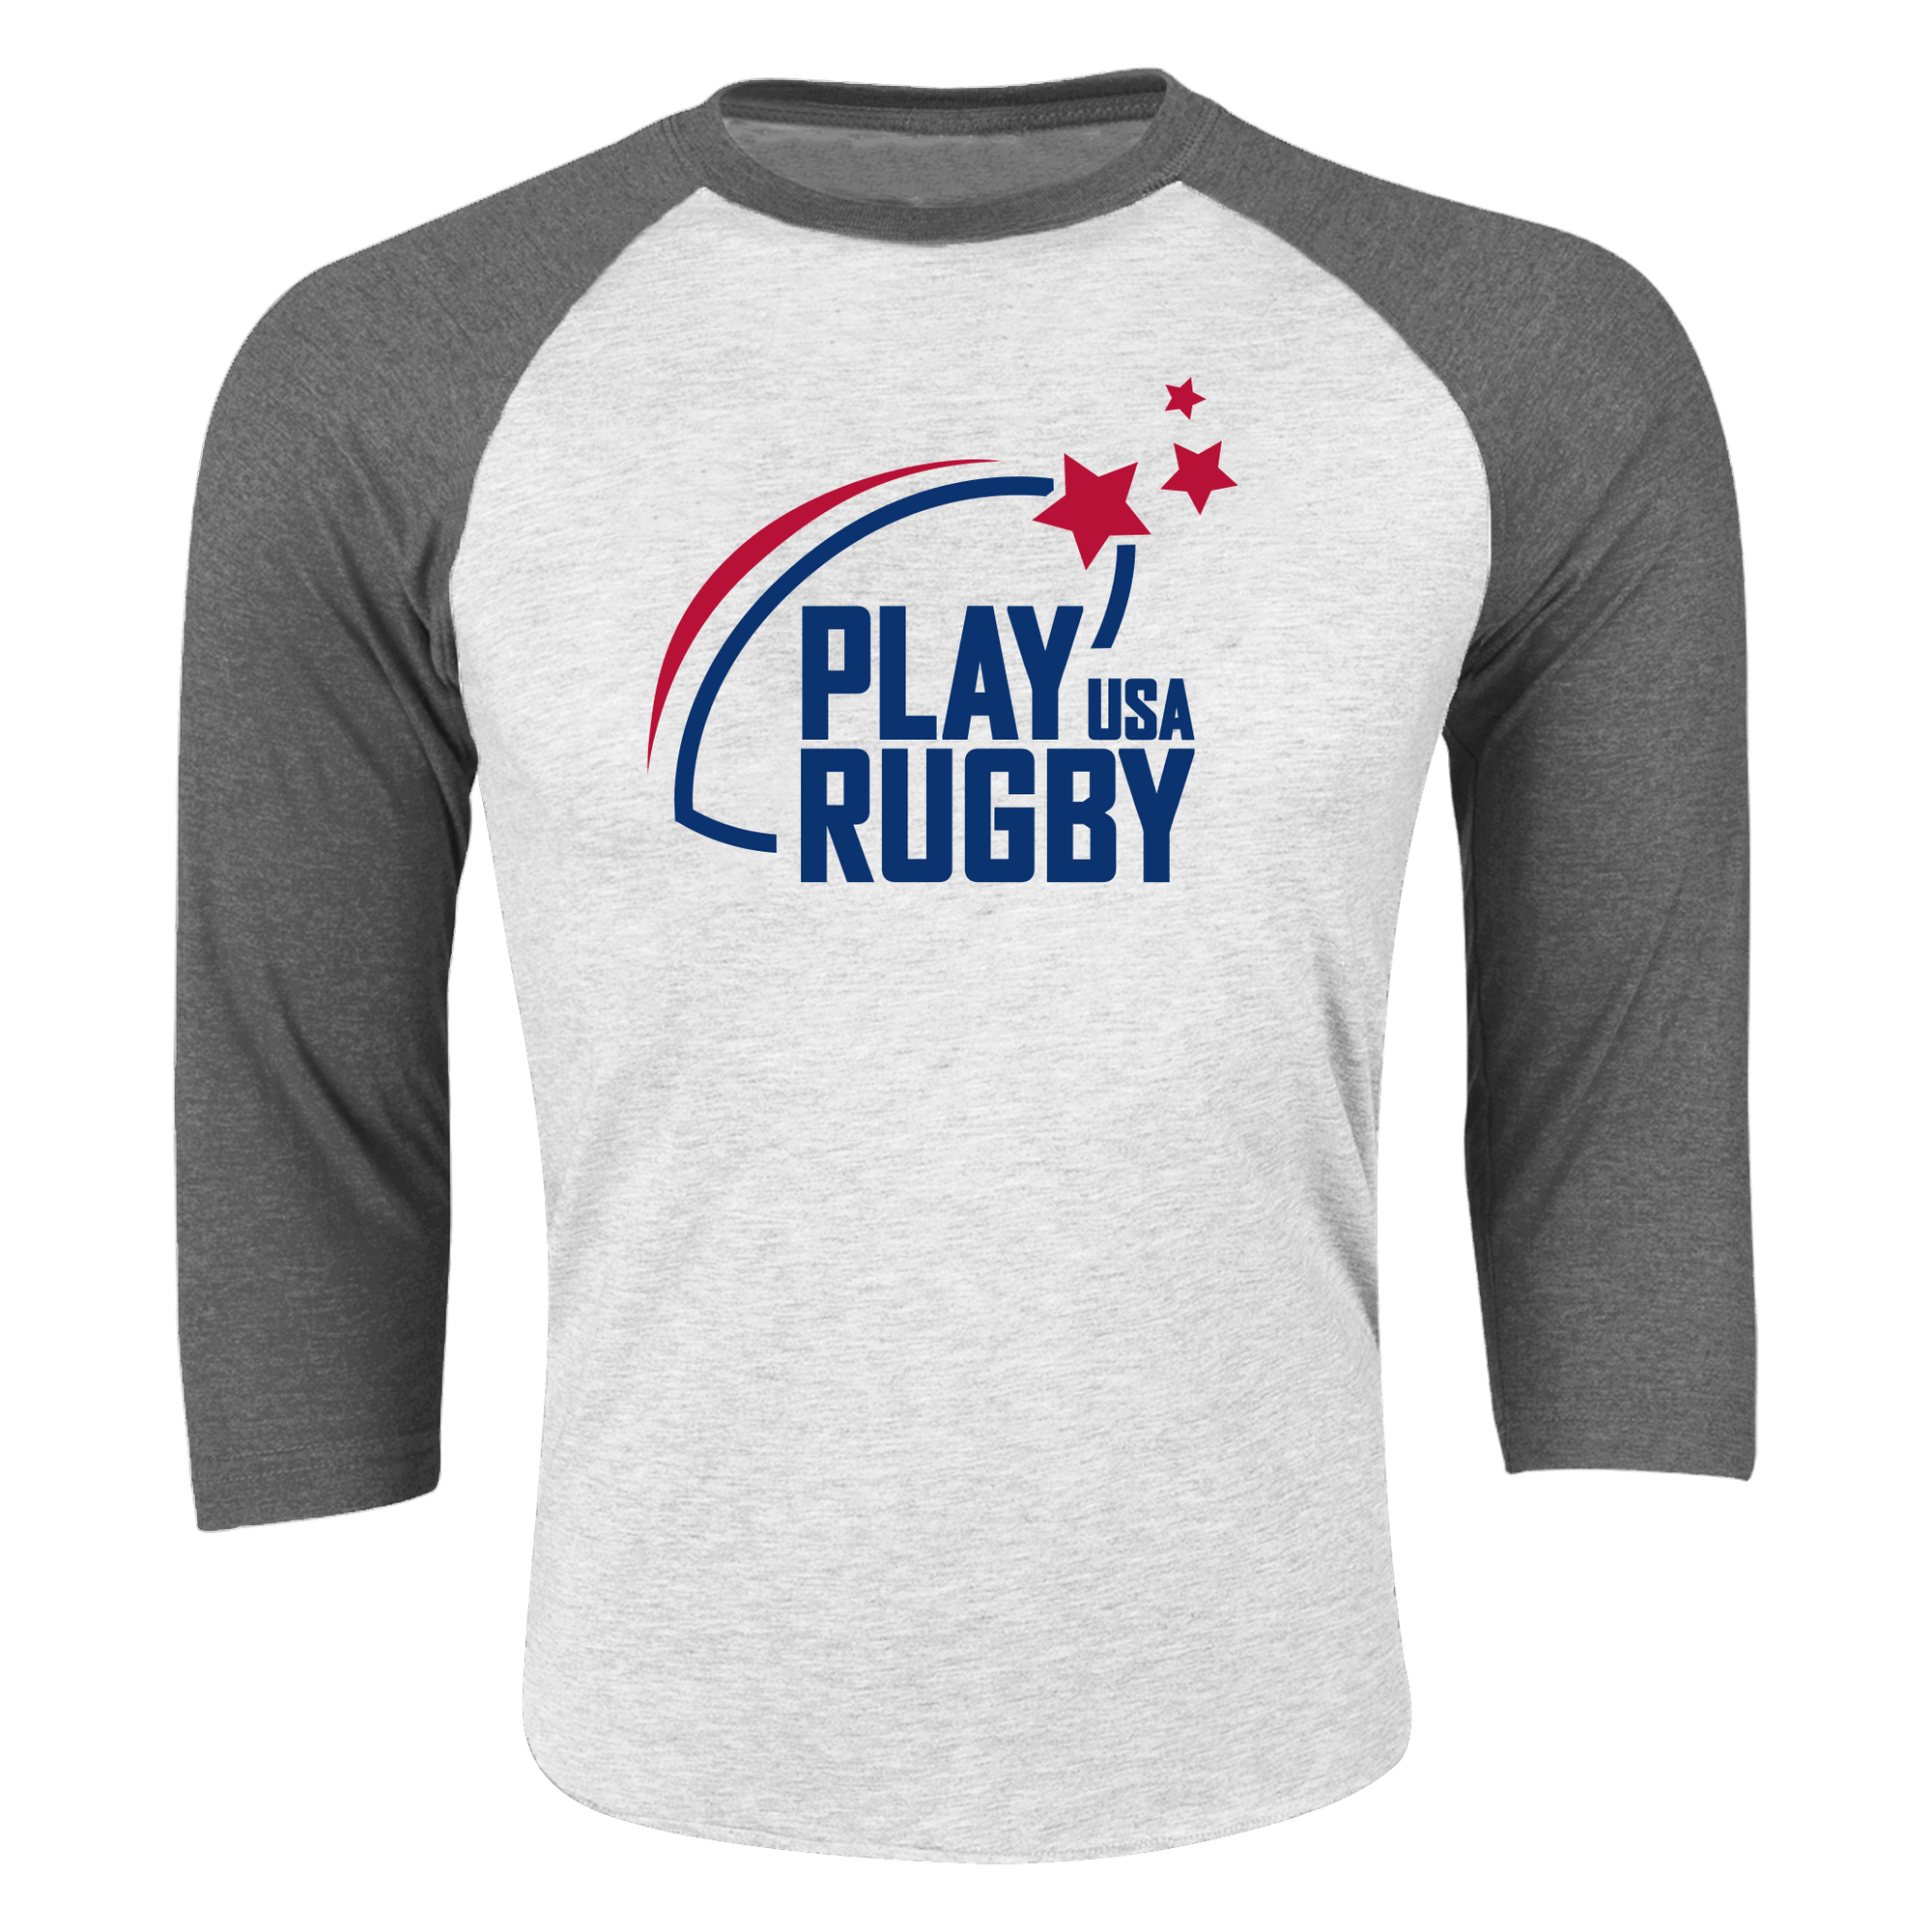 Play Rugby USA 3/4 Sleeve Raglan Shirt